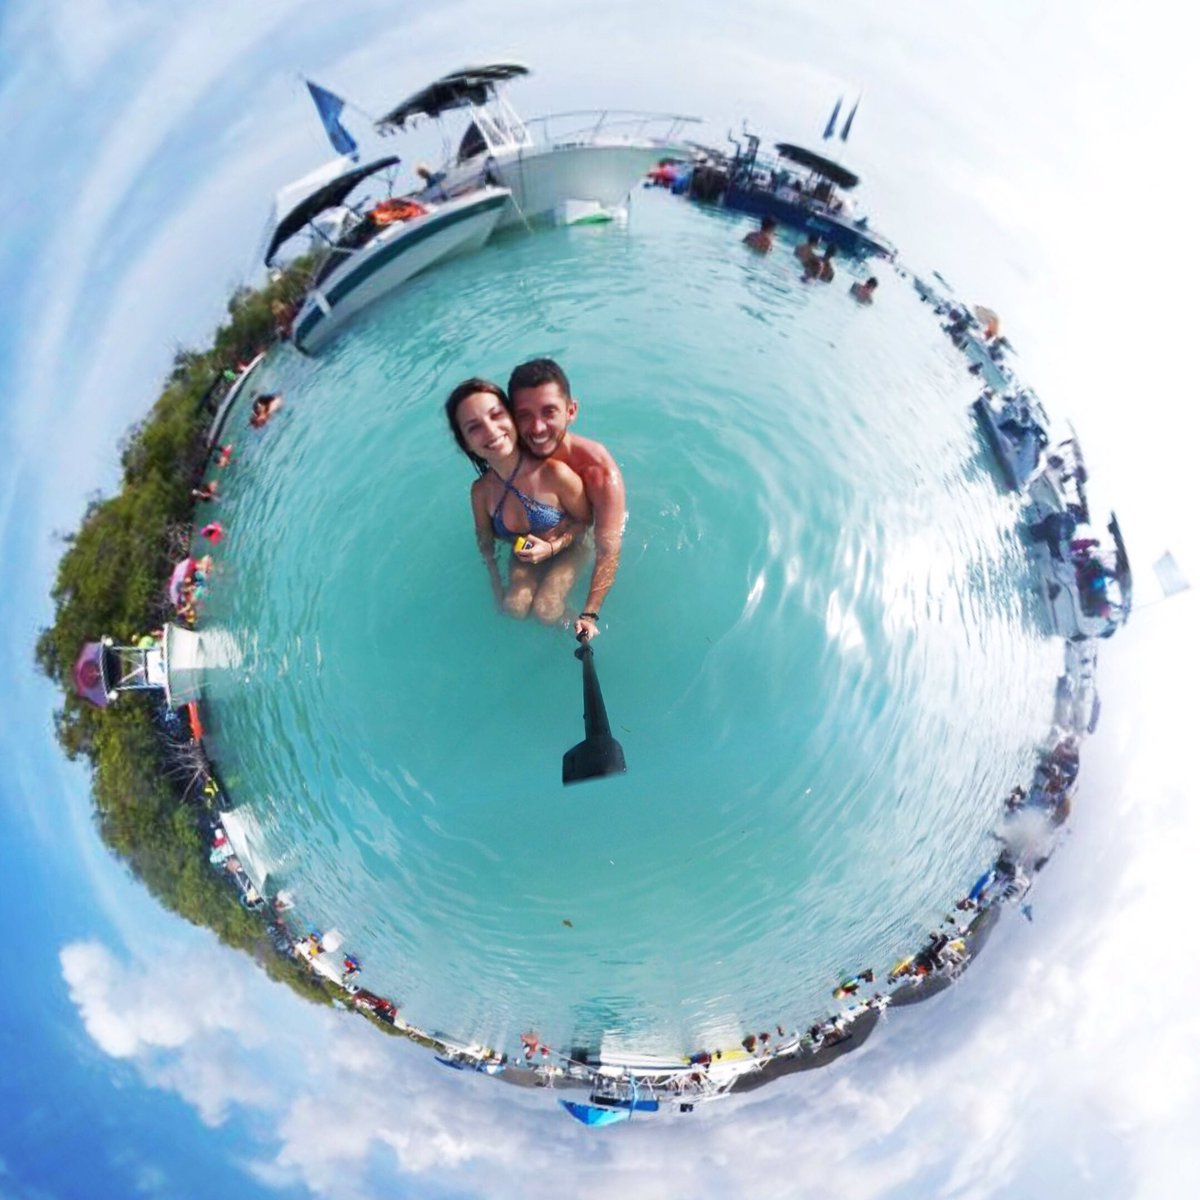 Like a kid on the sand, I wanna hold your hand. You define my entire world -Kungs #paradise #javicel #tinyplanetcouple #travel #puertorico<br>http://pic.twitter.com/iTxkiHlTPG